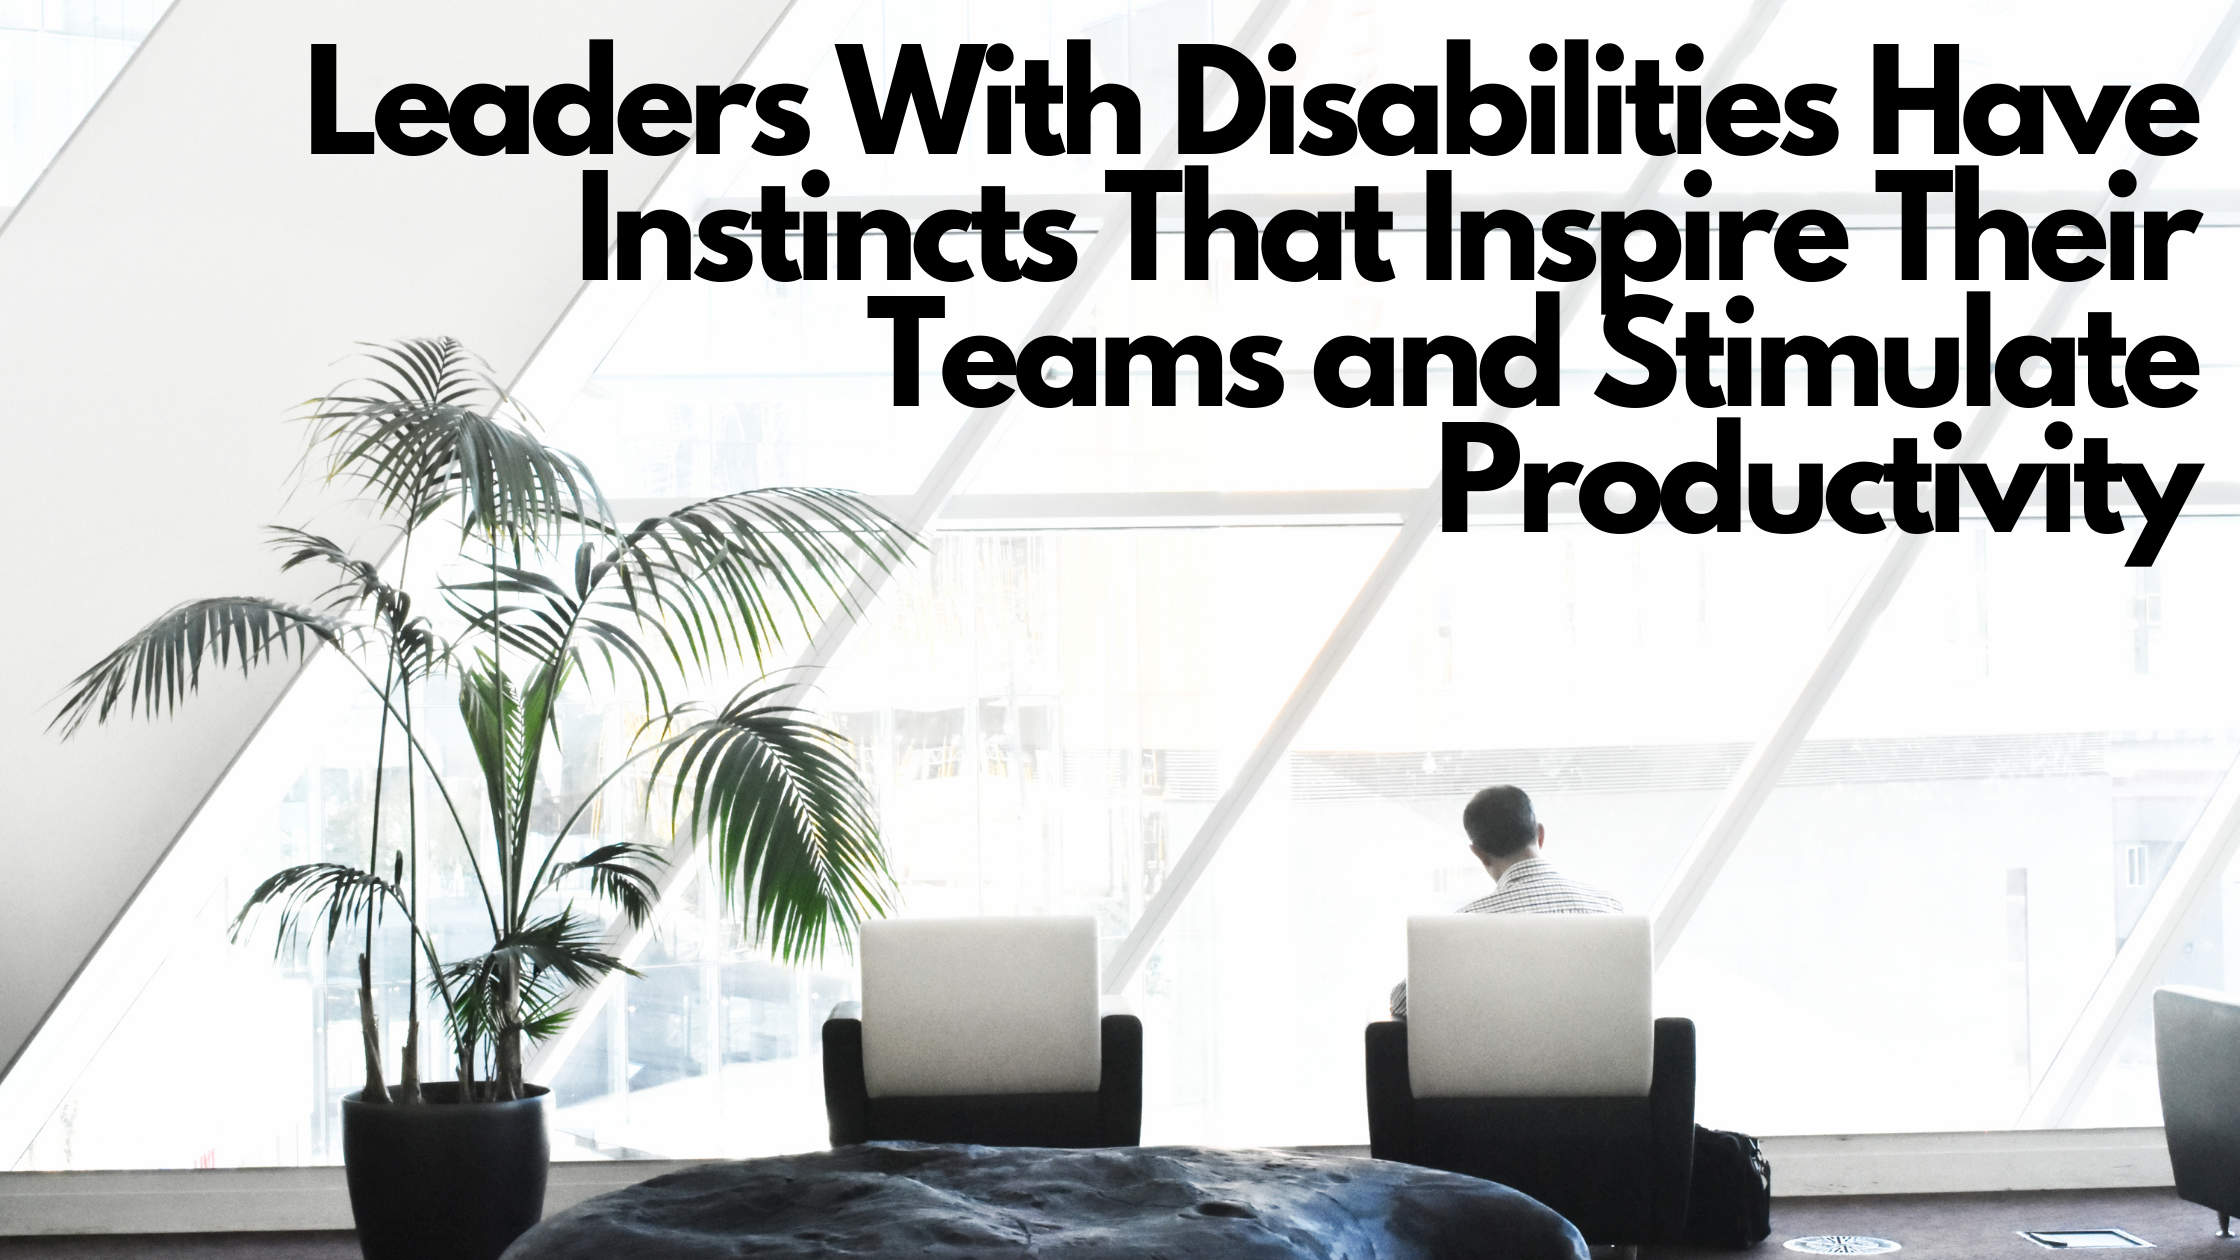 Leaders With Disabilities Have Instincts That Inspire Their Teams and Stimulate Productivity